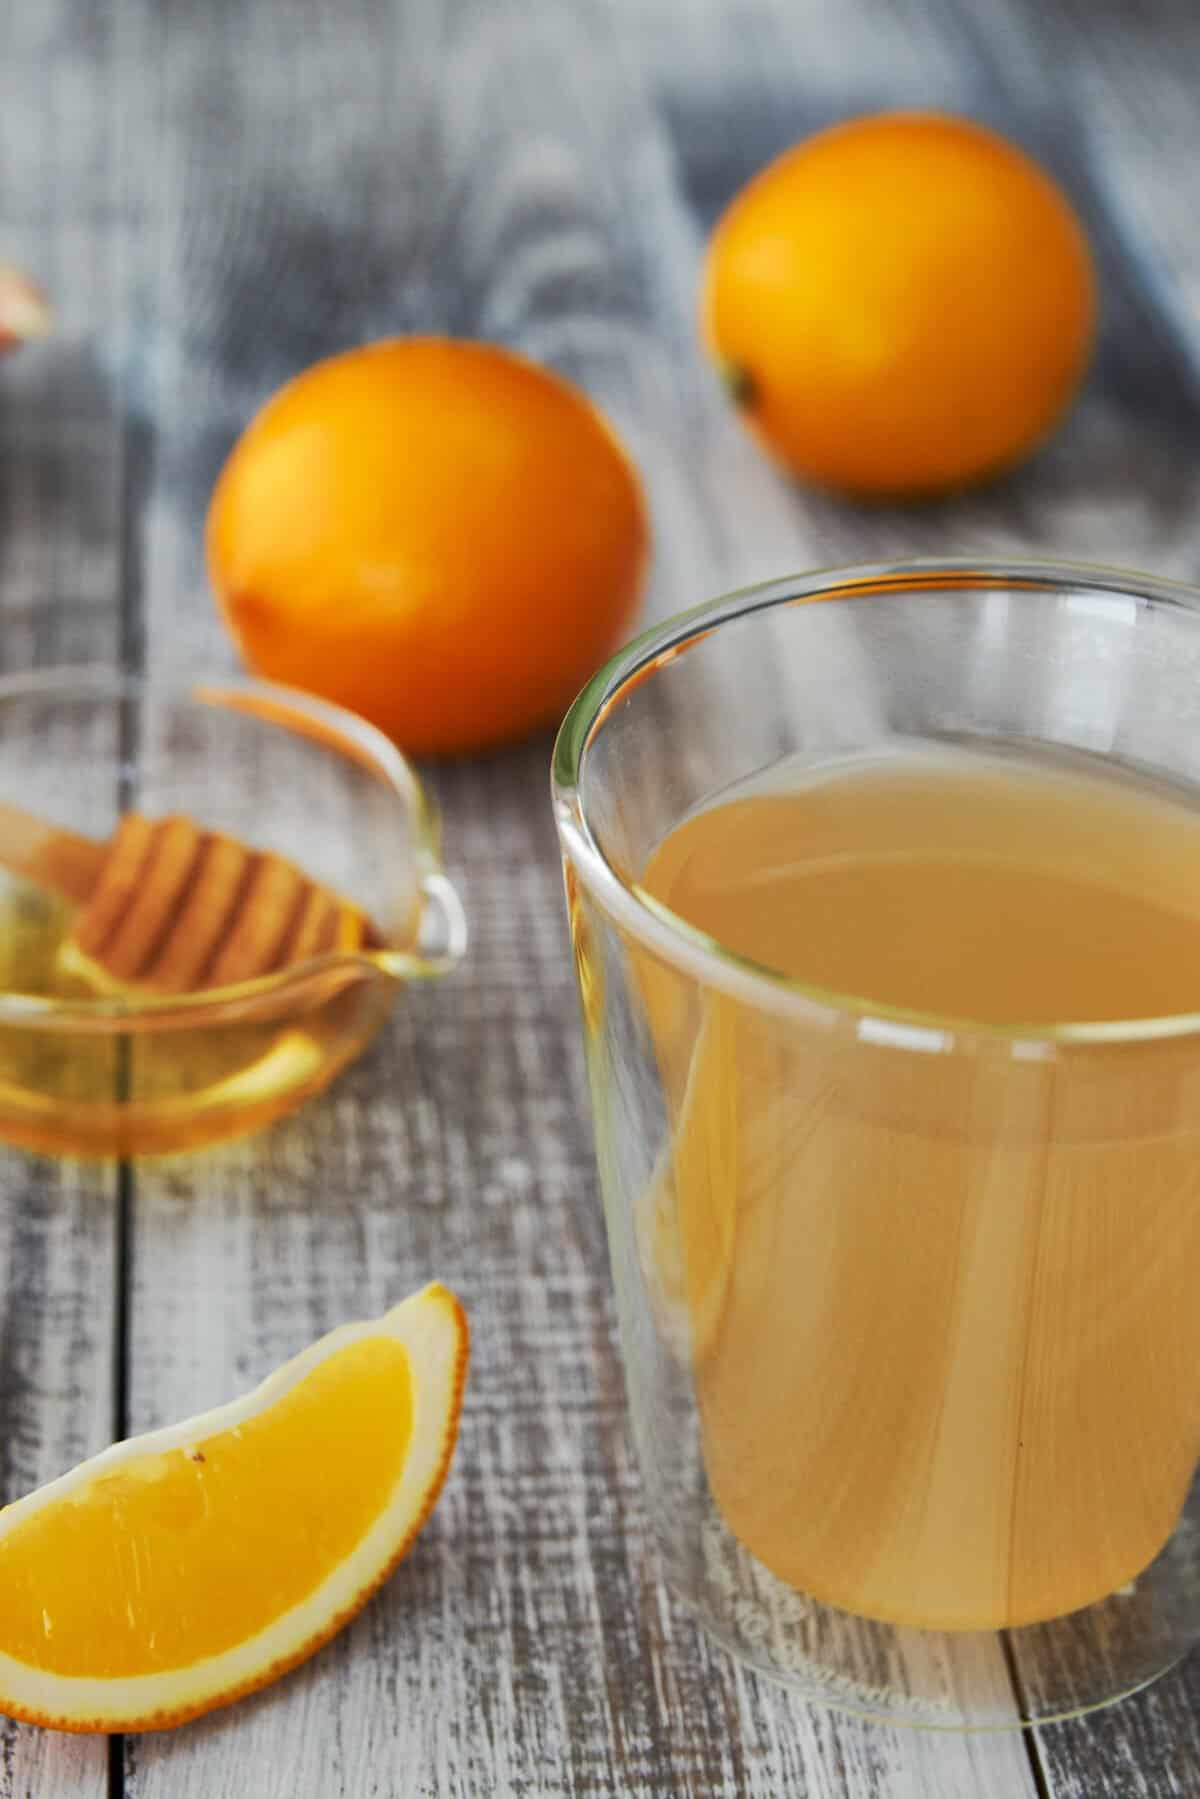 This Shogayu recipe (ginger tea) is fragrant, warming and delicious, and all you need to make it is some fresh ginger, lemon and honey.